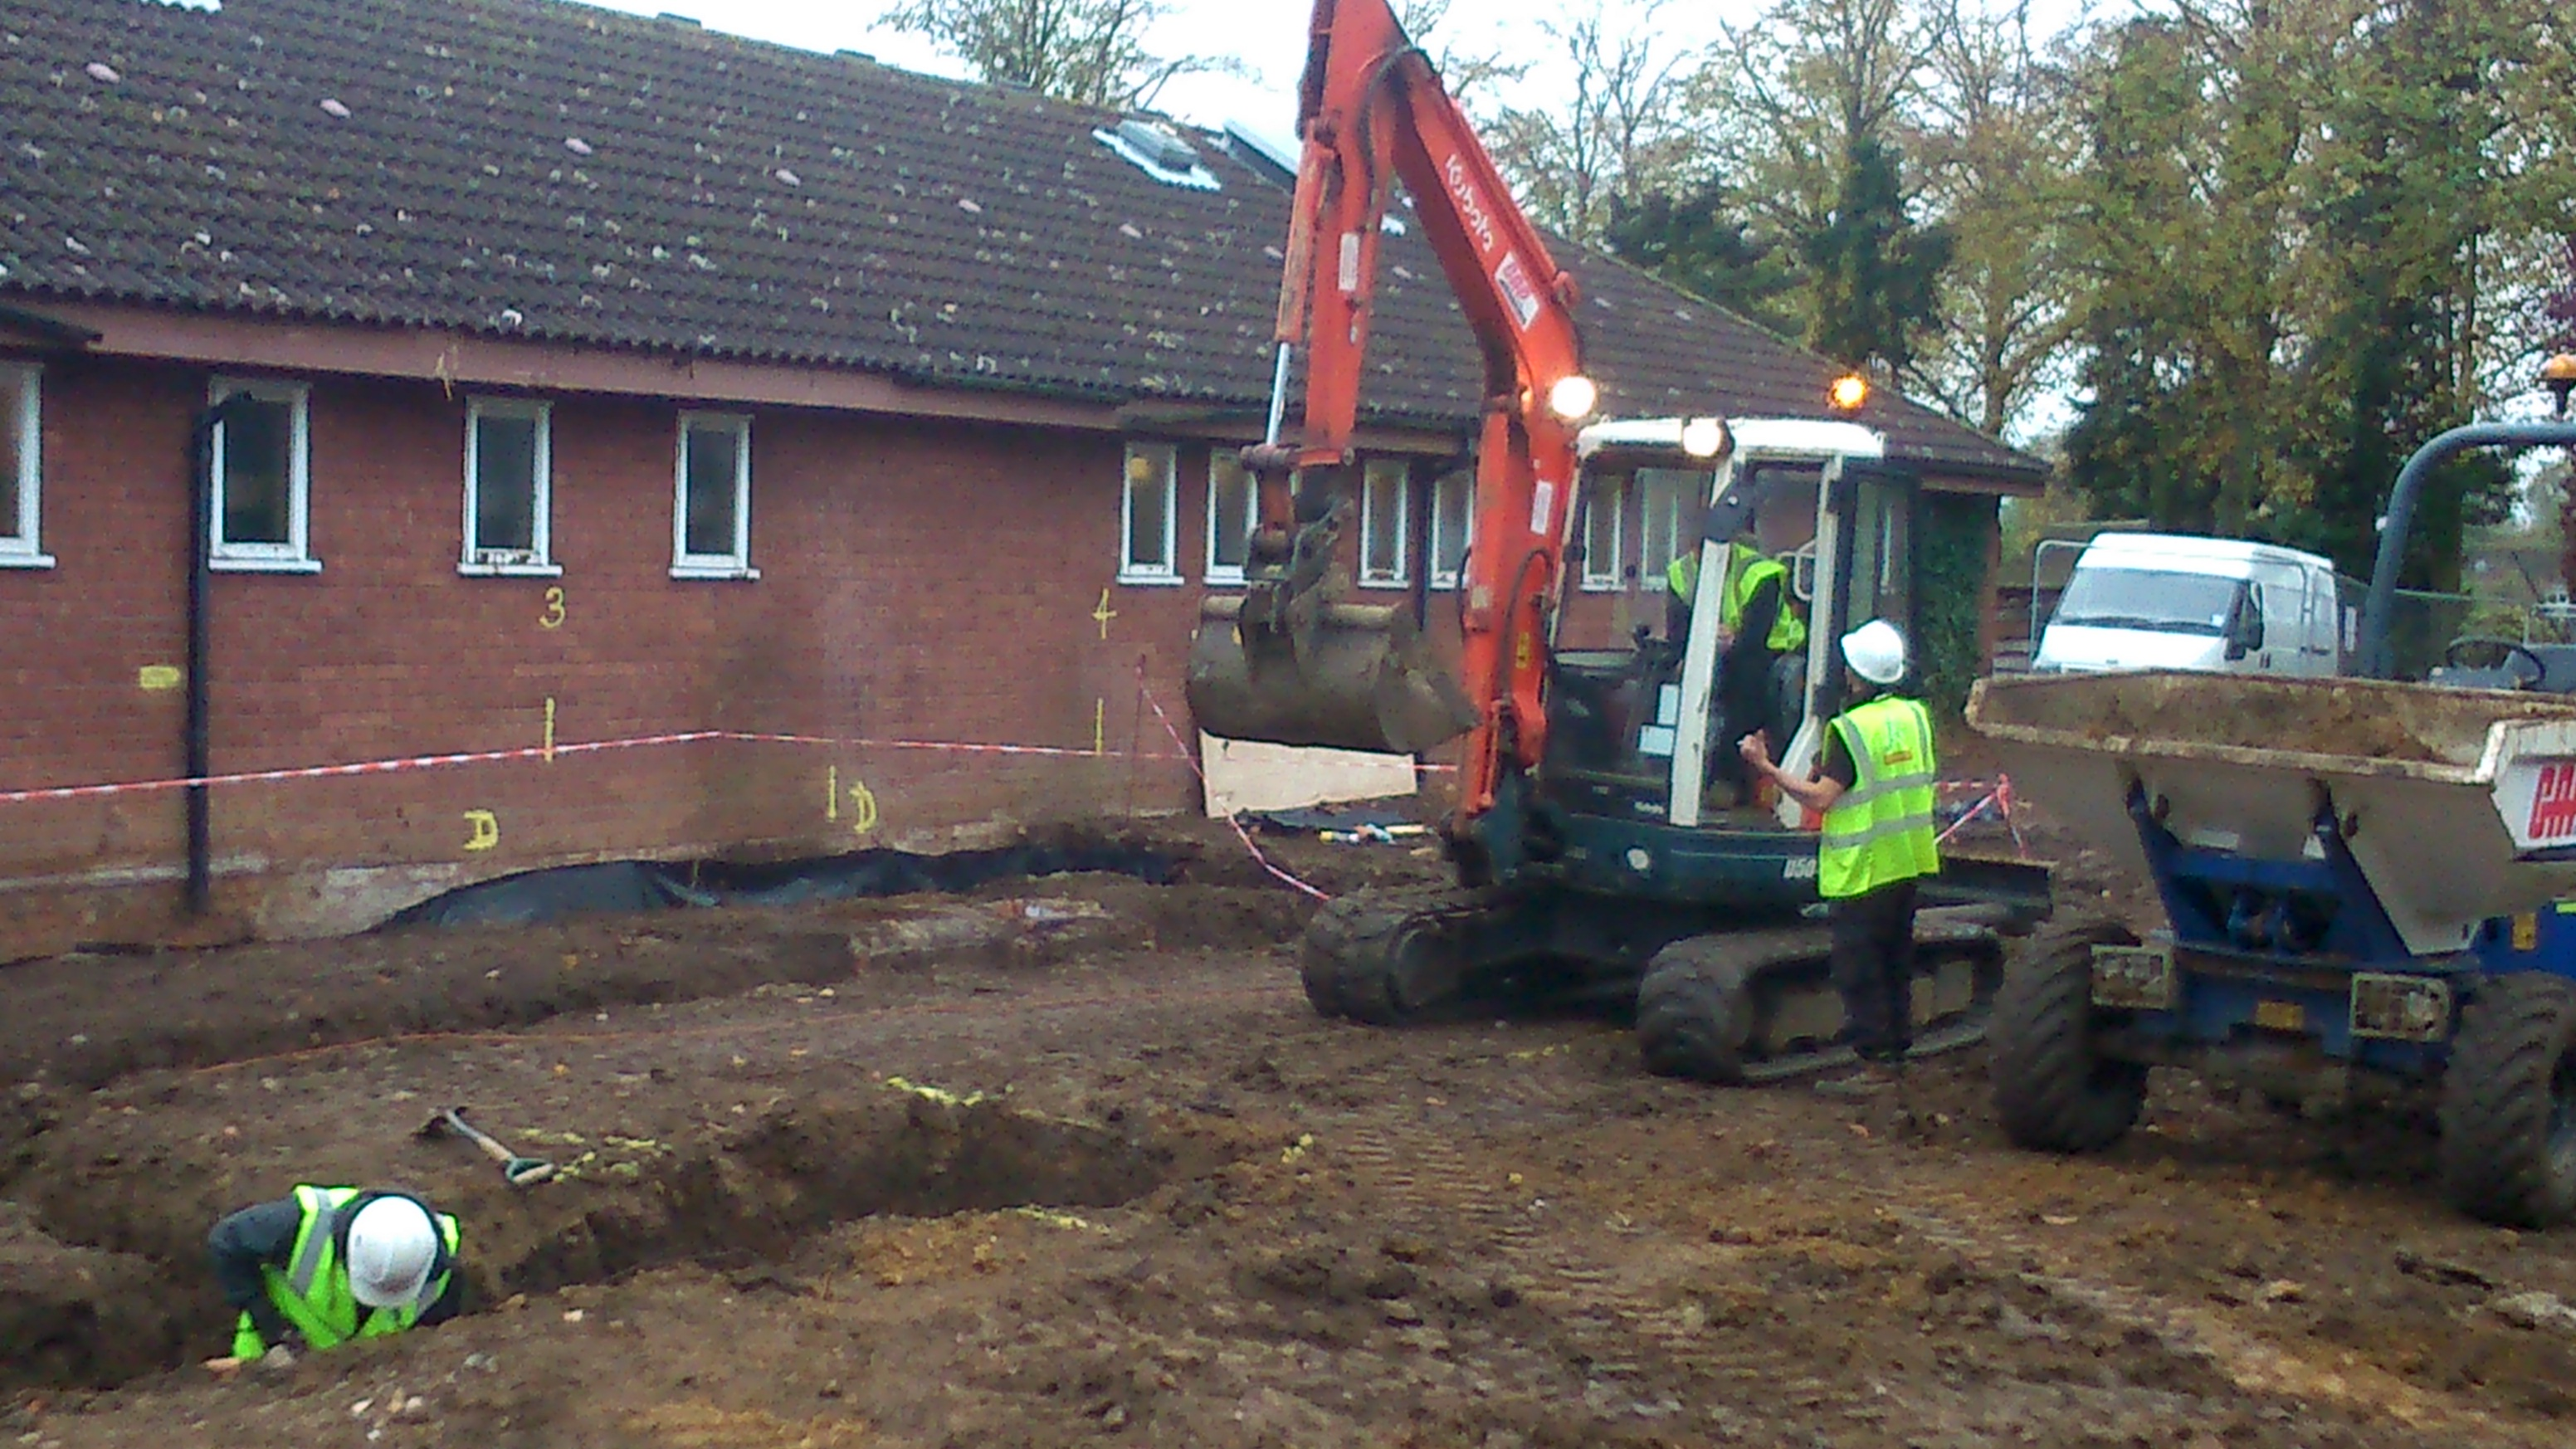 Middleton Swimming Pool Newport Pagnell Is Having A New Gym Extension Paul Alexander